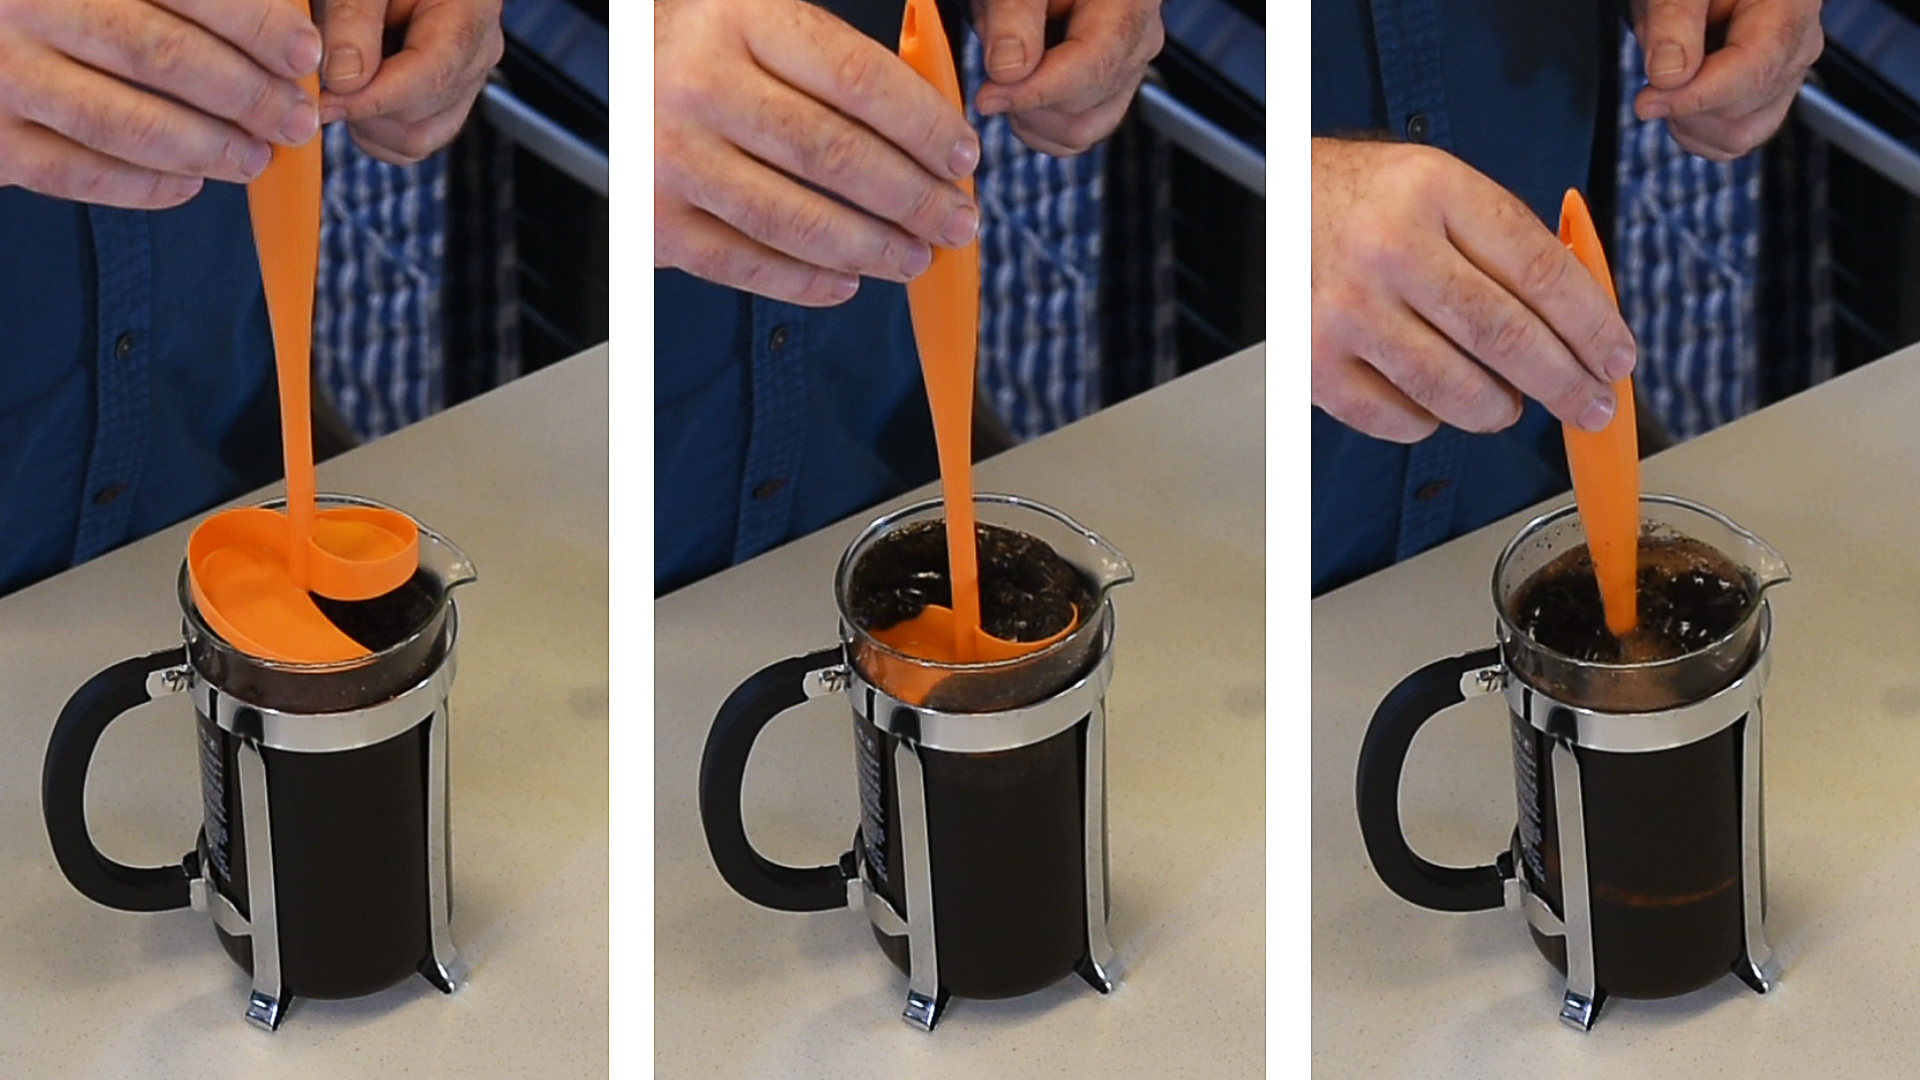 Showing the ease of stirring cafetiere coffee with Scoof in three pictures